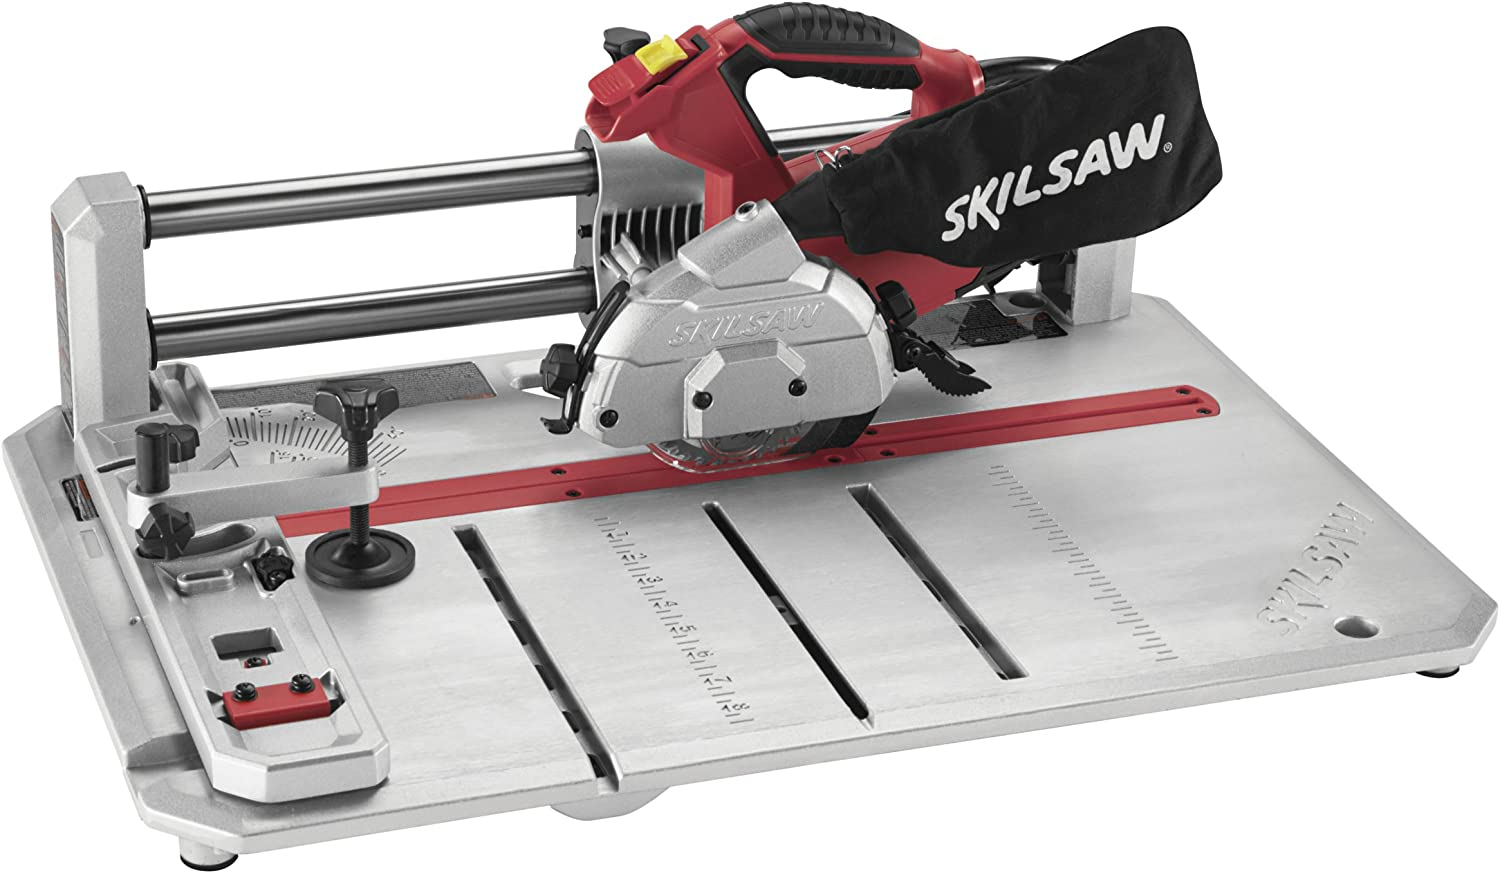 3. SKIL 3601-02 Flooring Saw with 36T Contractor Blade